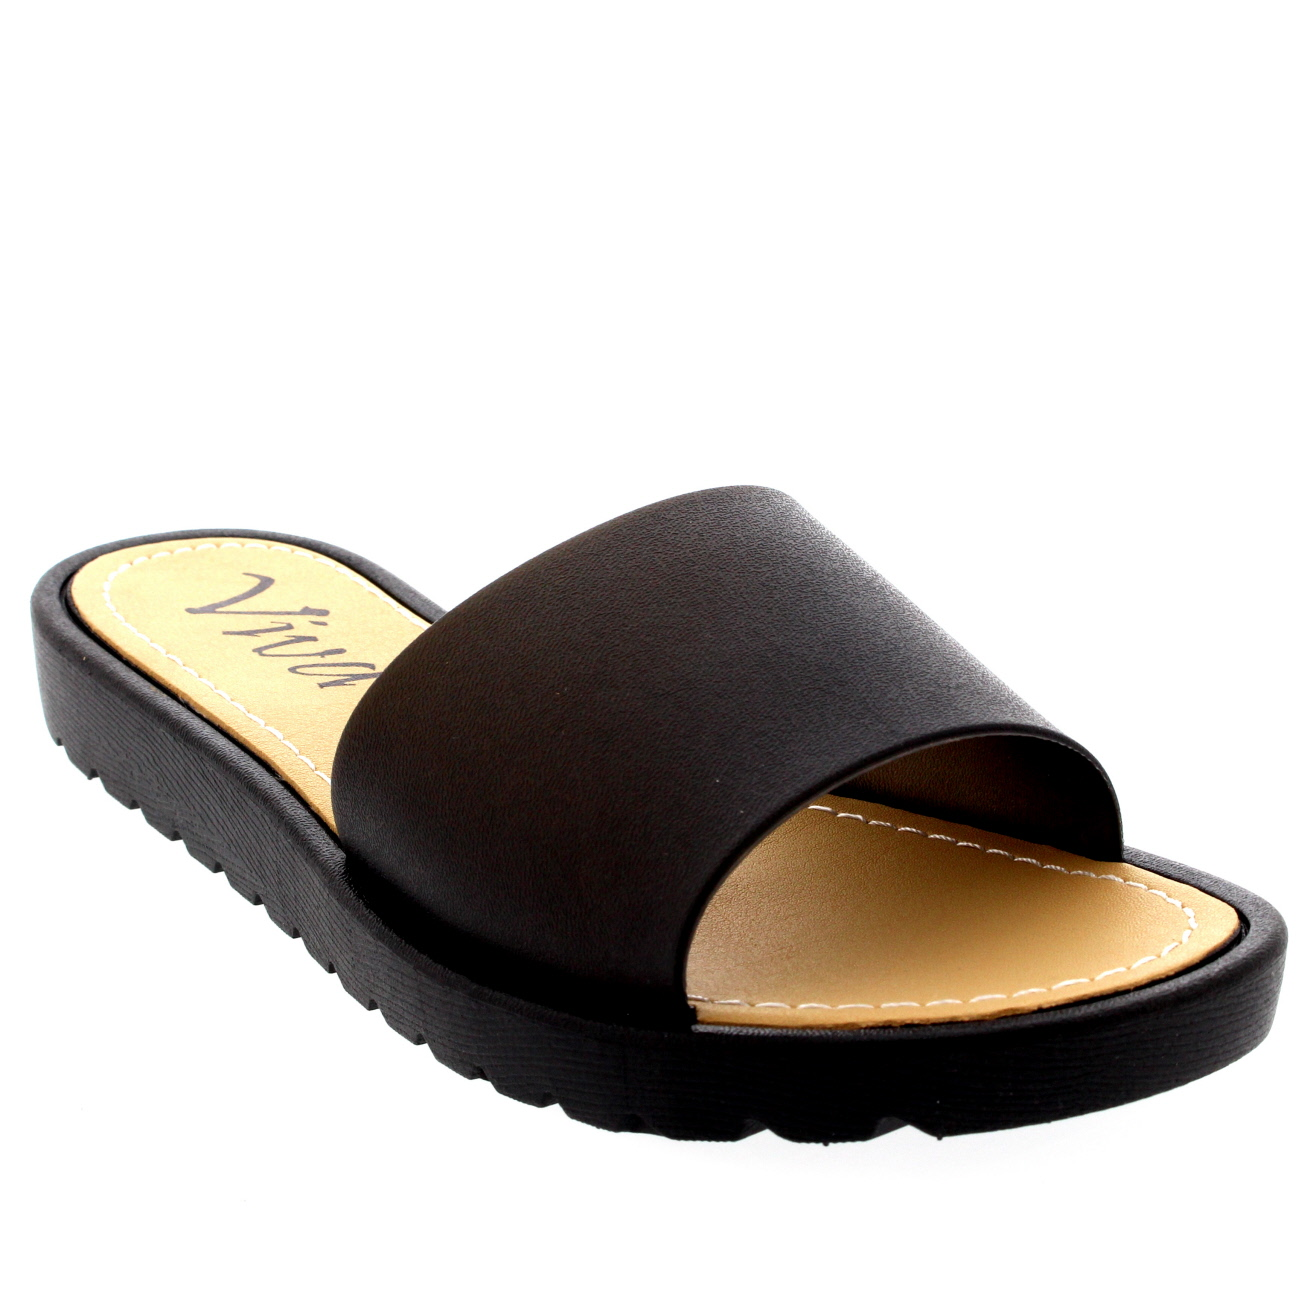 Womens Jelly Peep Toe Summer Pool Sliders Holiday Shoes ...